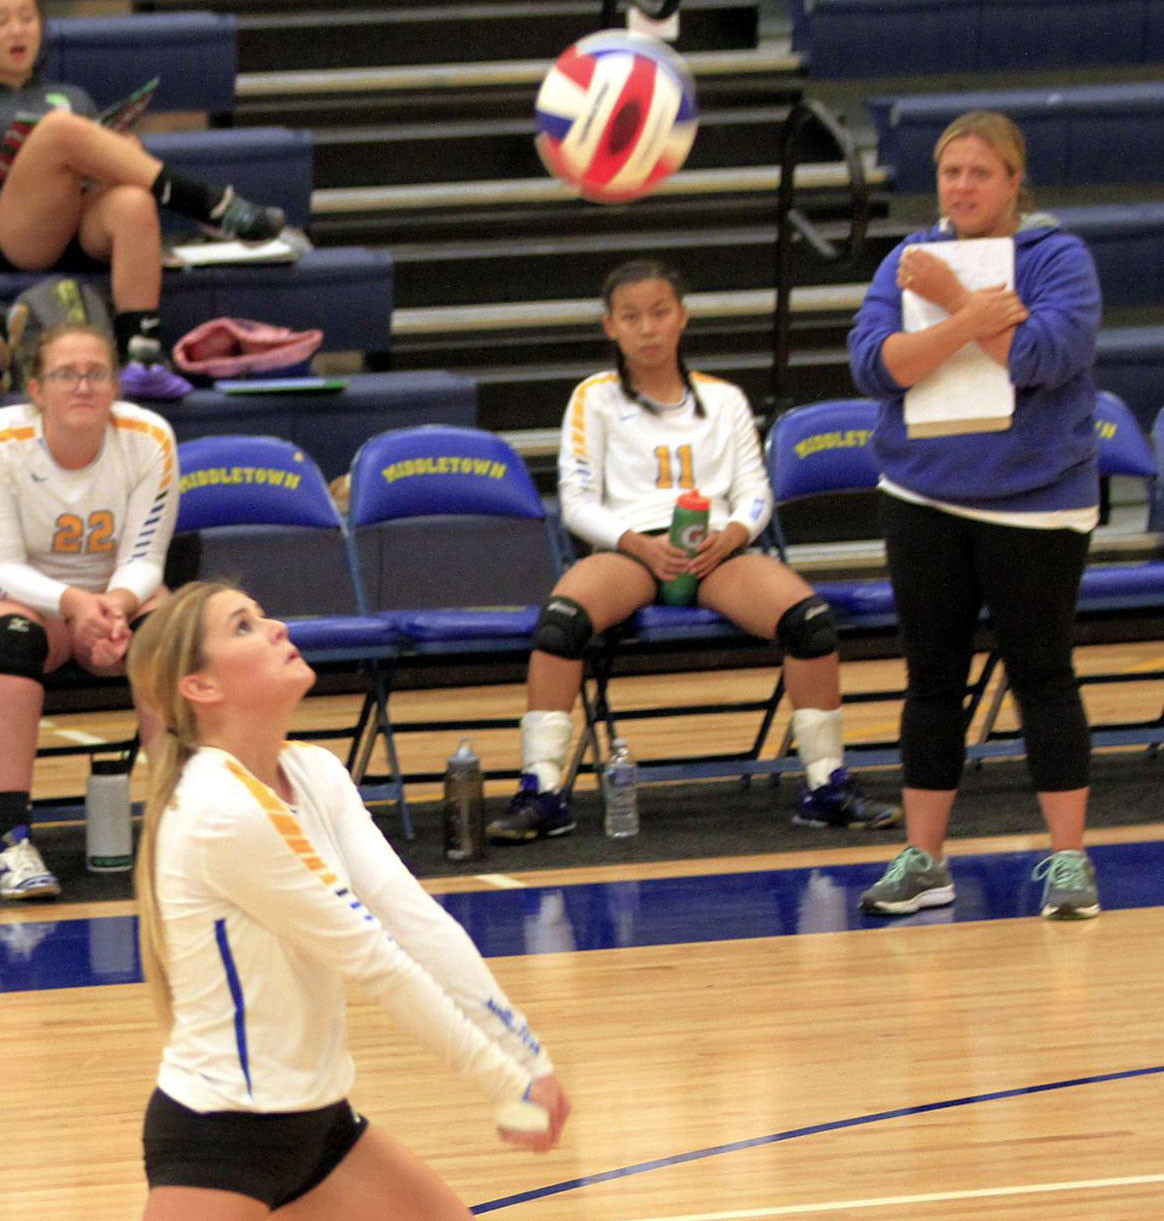 Coach Lisa Huber, right, watches senior Ivy Martnishn as she returns vs. Trinity on Monday, Sept. 11.